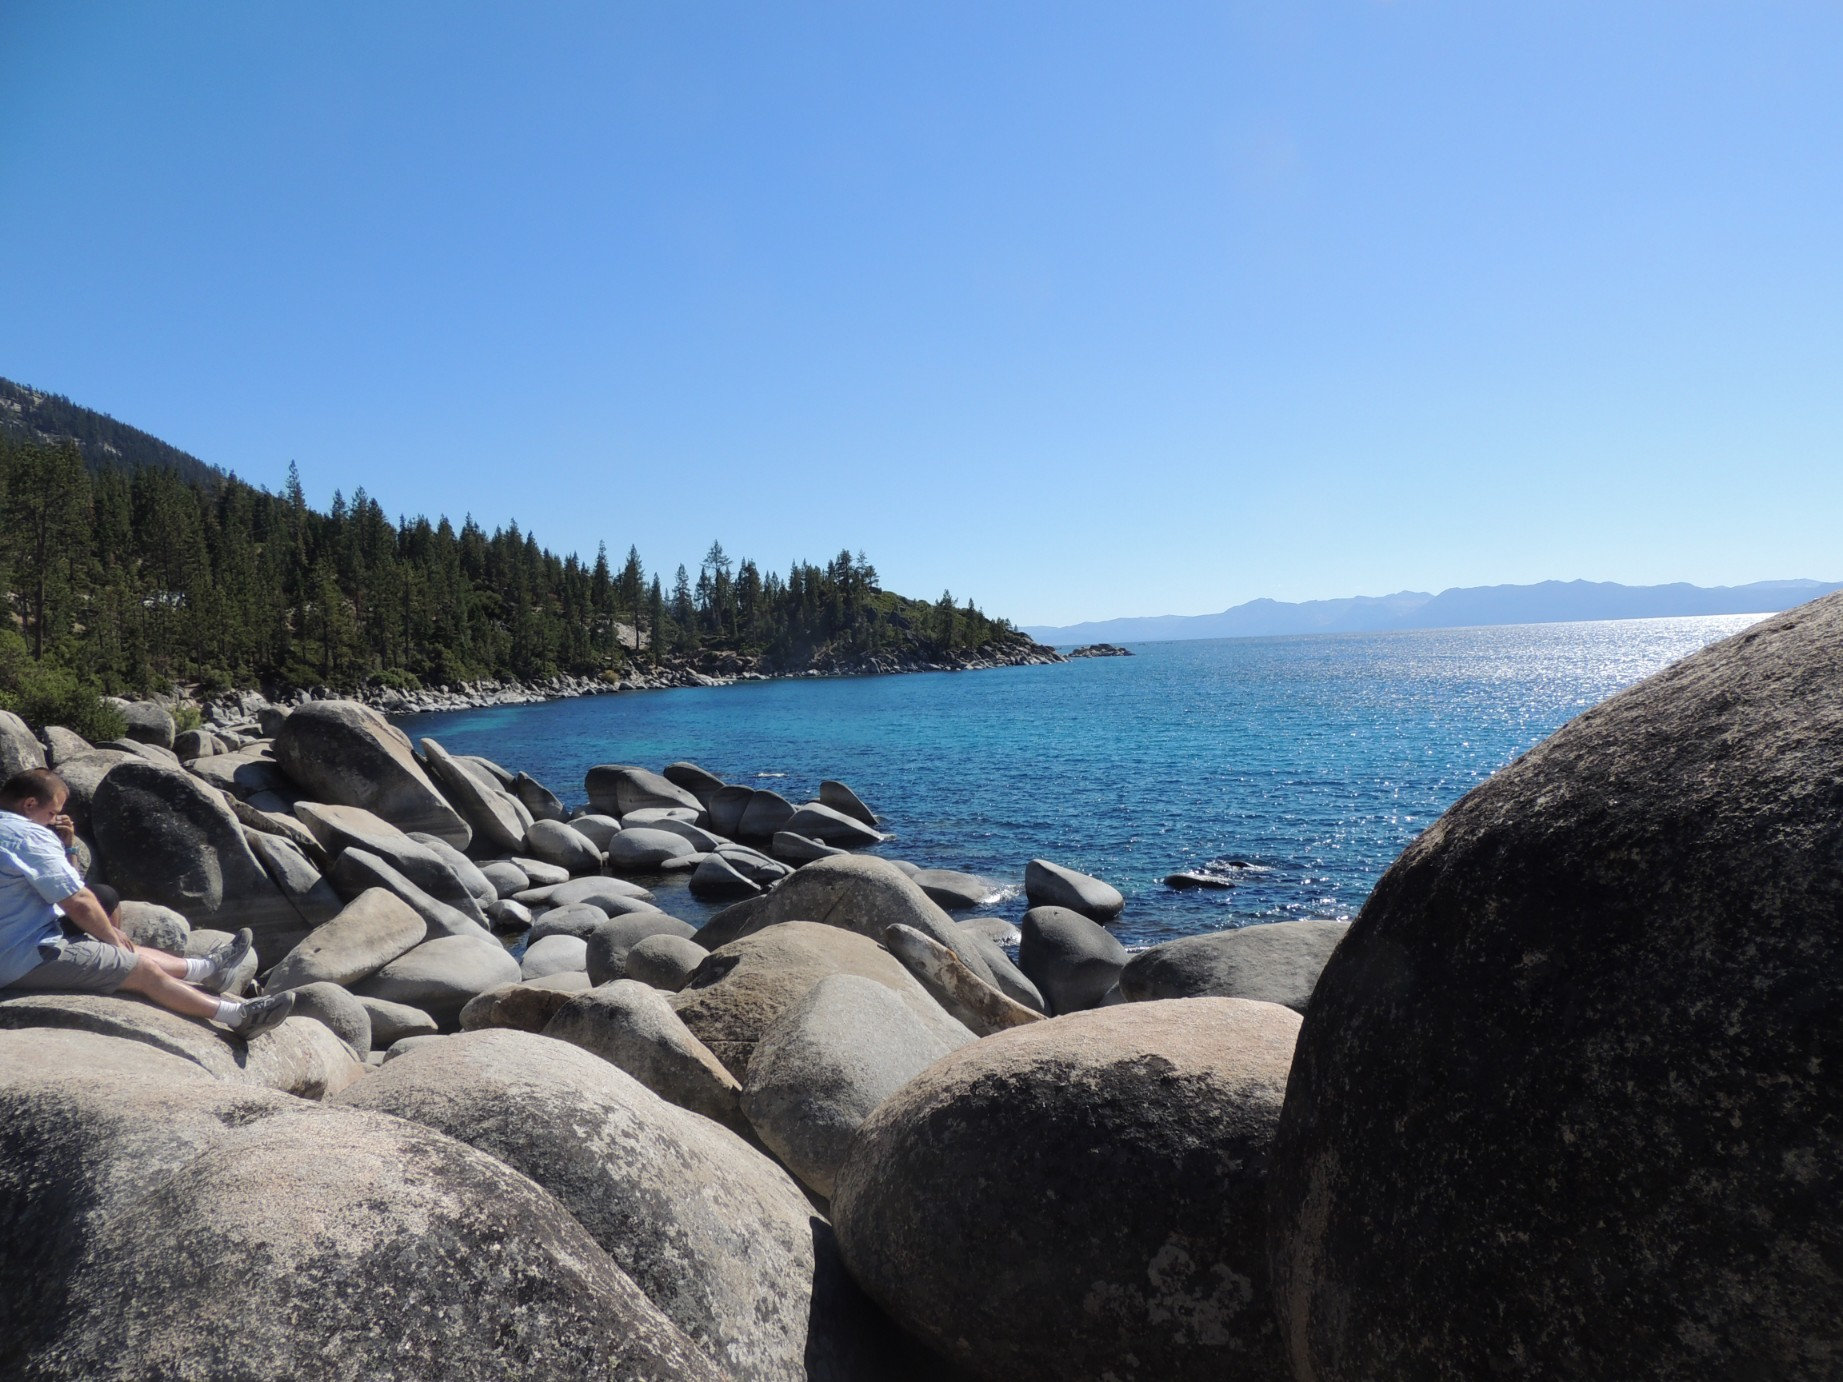 Lake Tahoe - Yosemite National Park 2015